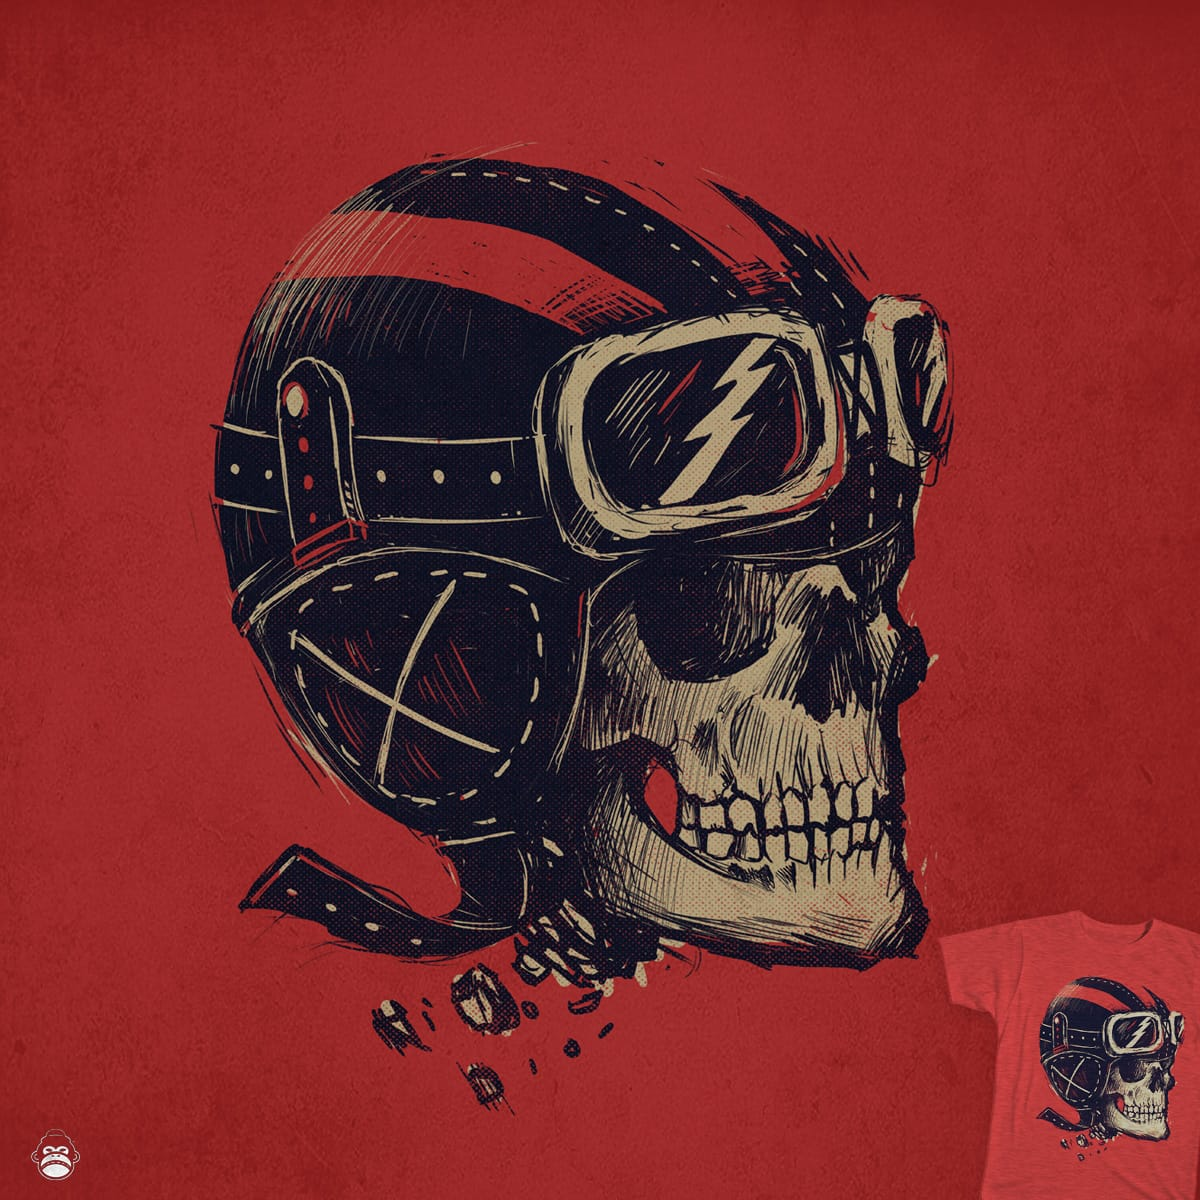 Ride Til You Die by alexmdc on Threadless